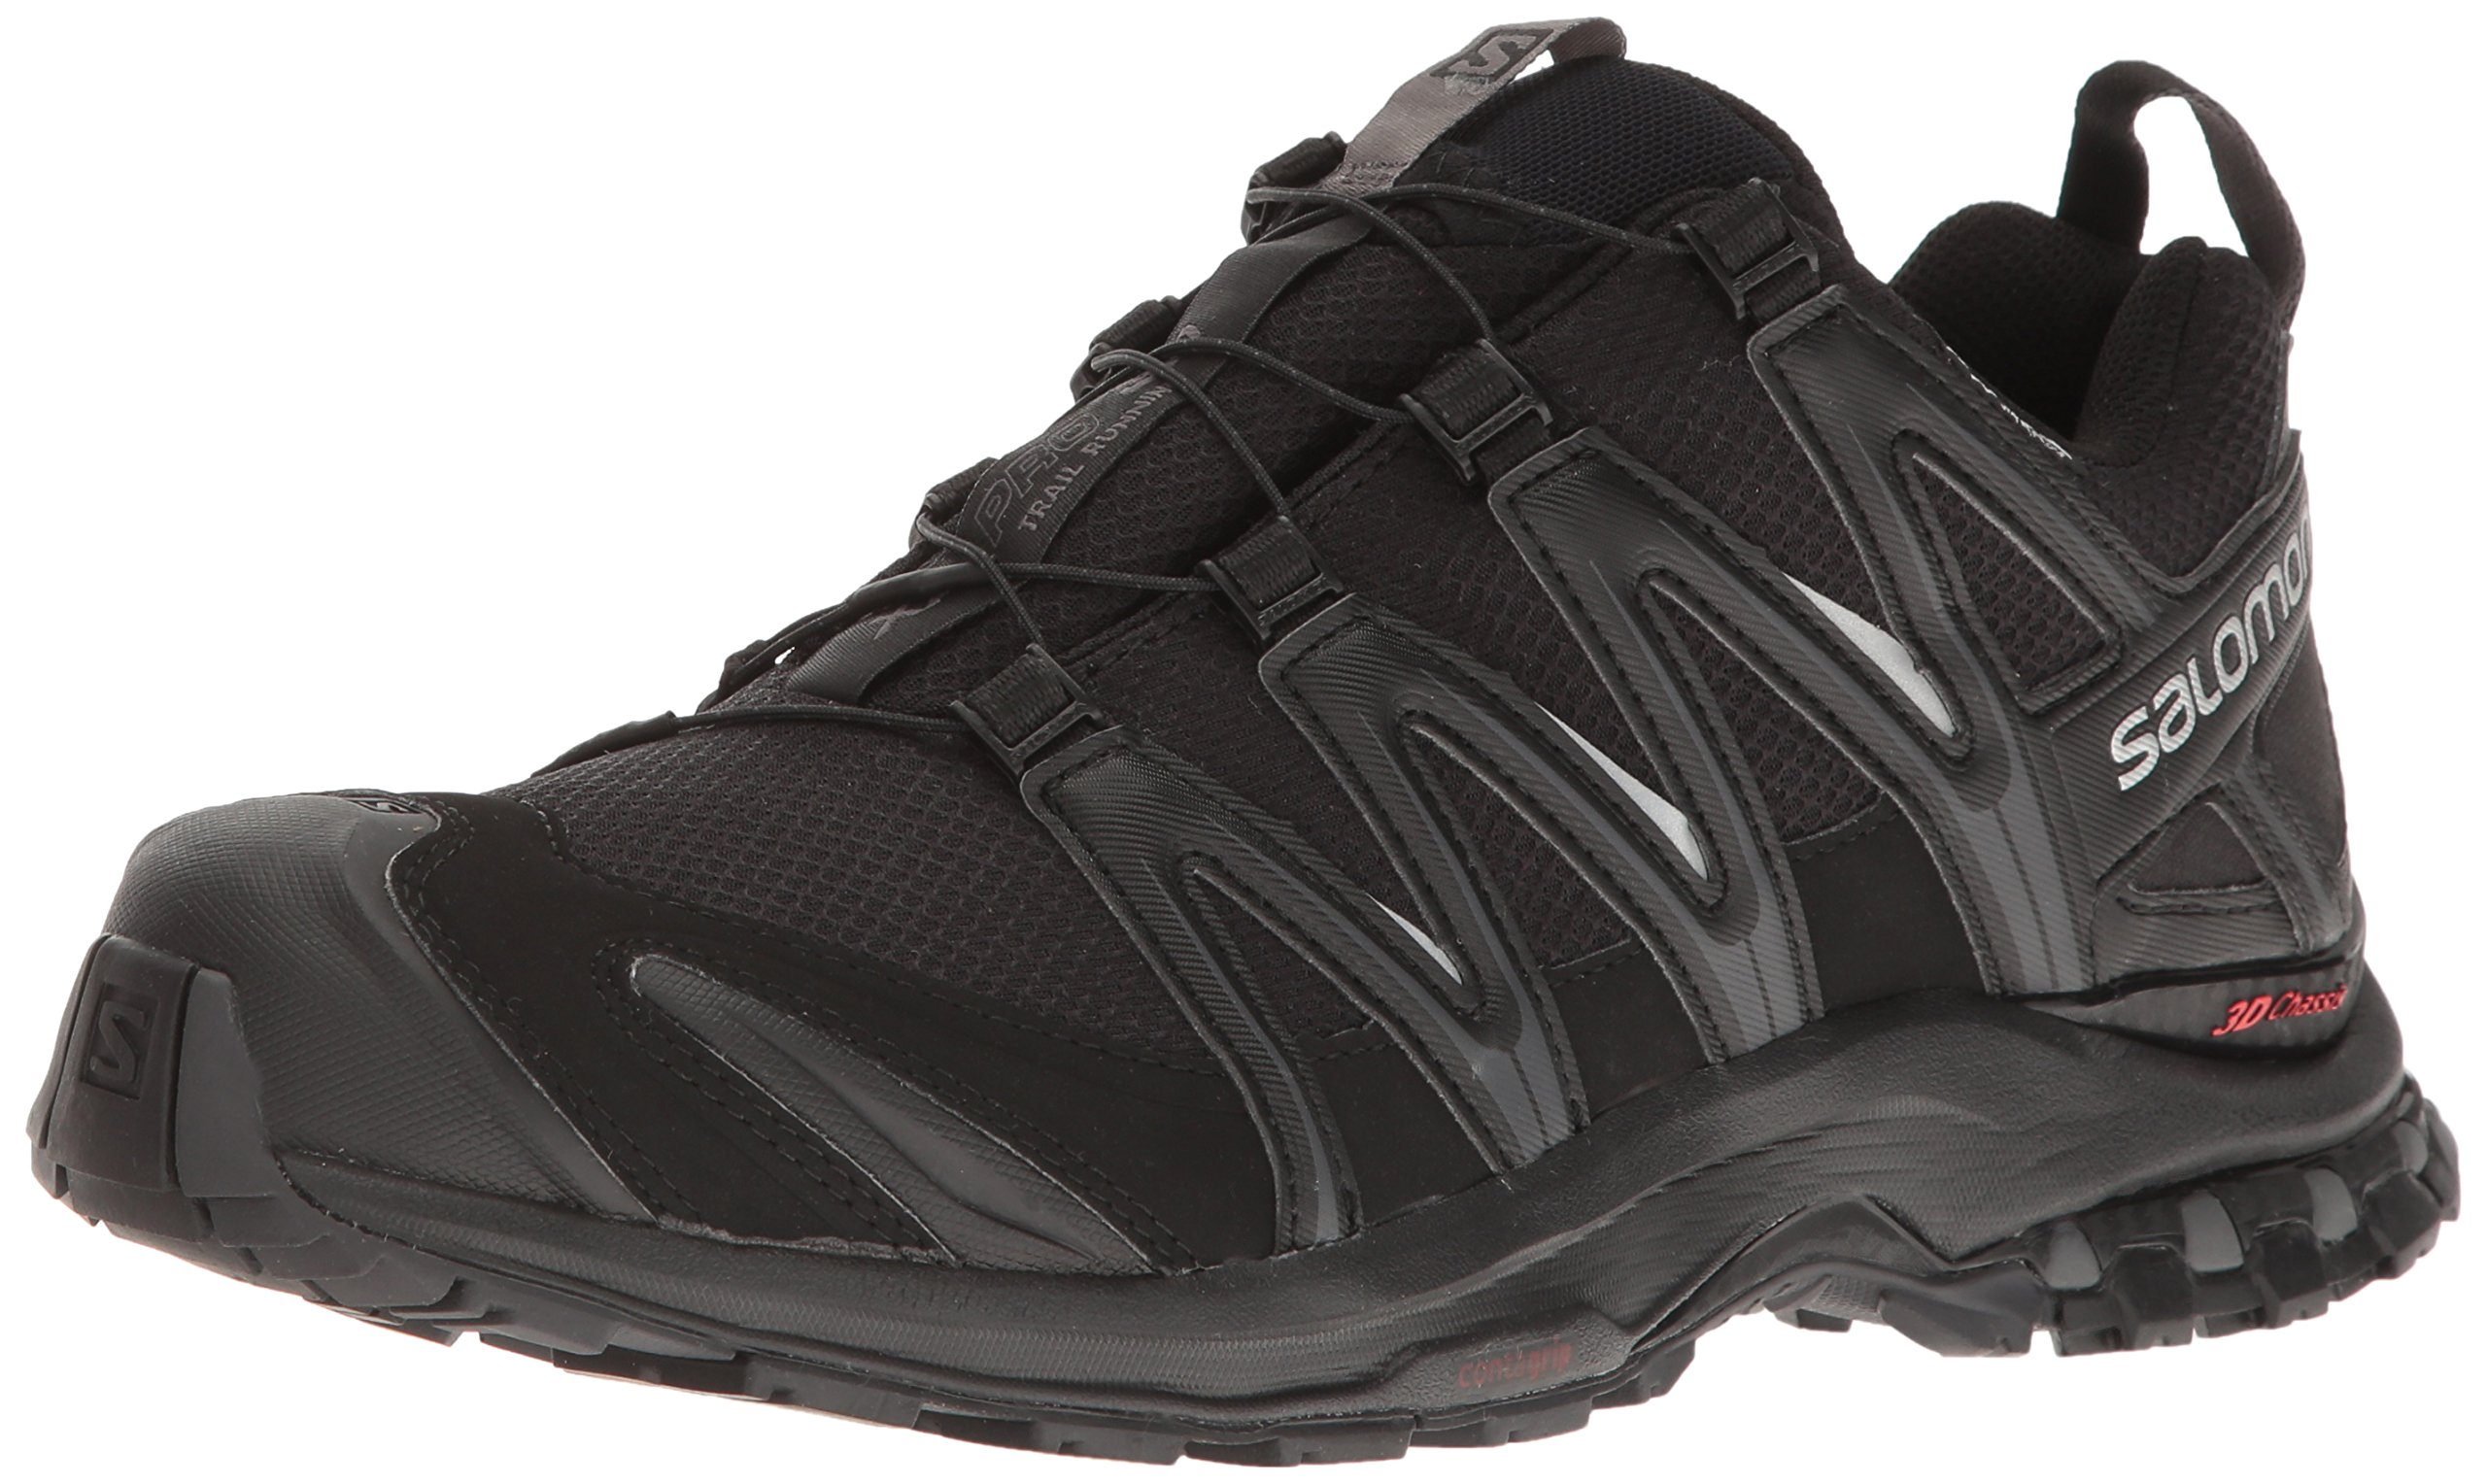 Salomon Men's XA Pro 3D CS Waterproof Trail-Runners, Black, 9 M US